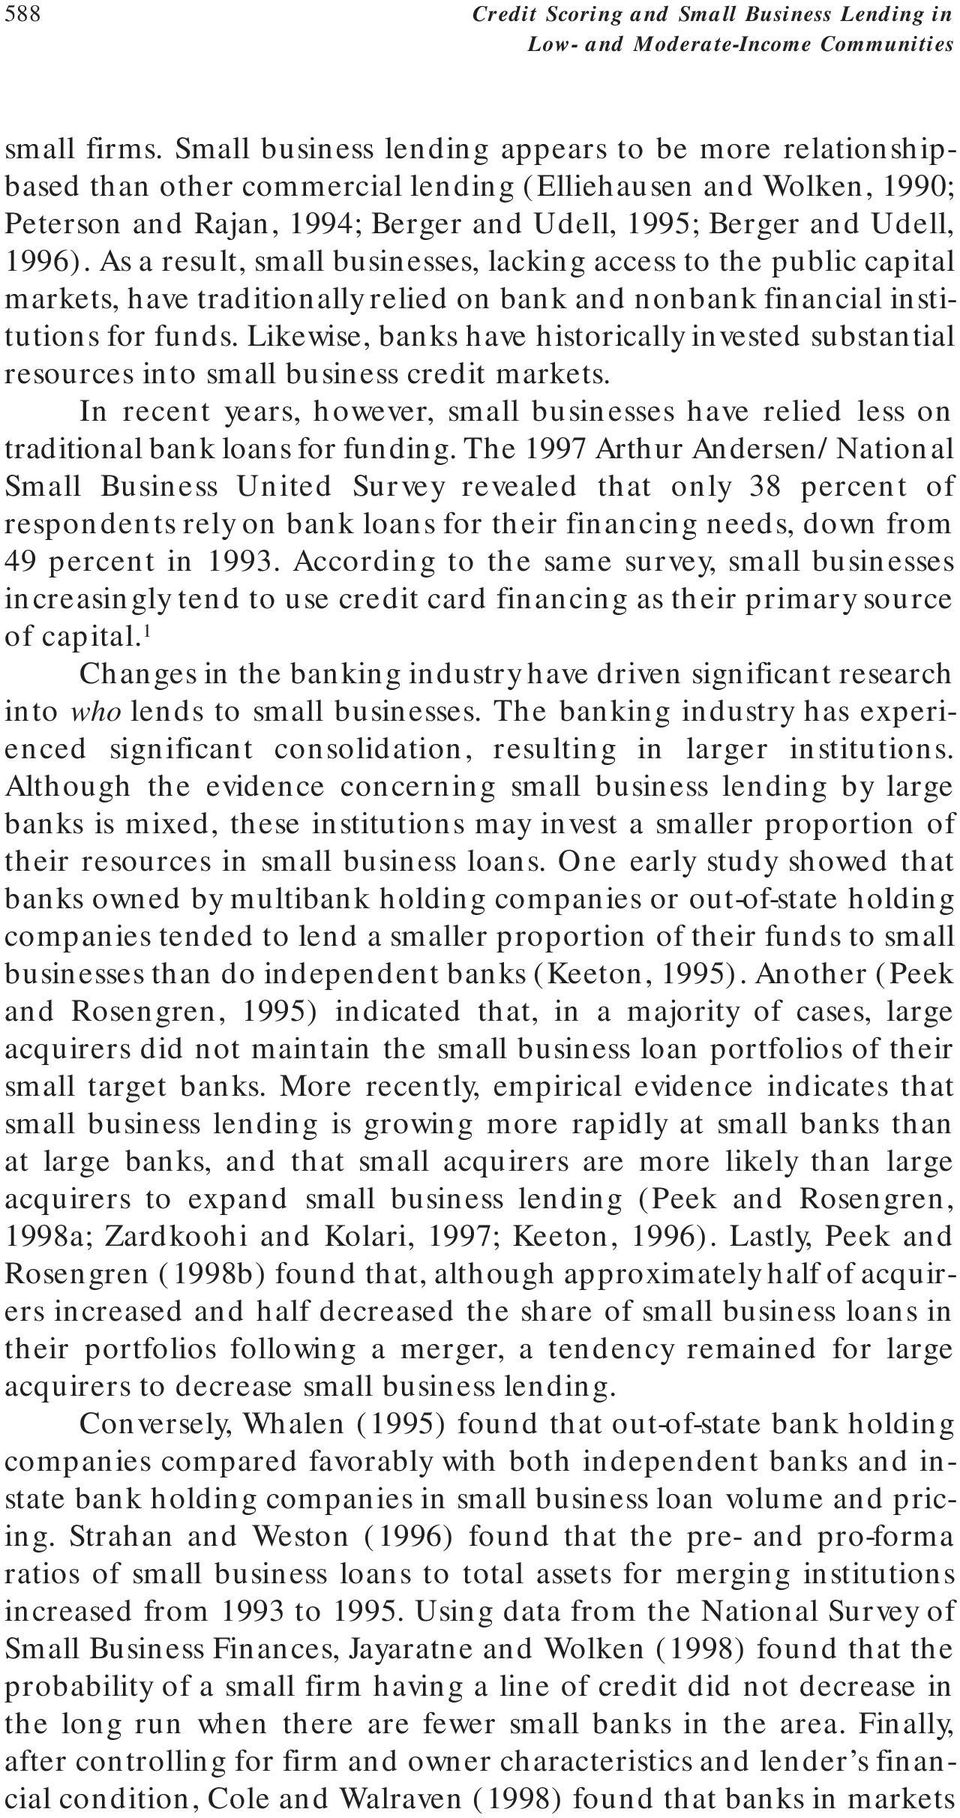 As a result, small businesses, lacking access to the public capital markets, have traditionally relied on bank and nonbank financial institutions for funds.